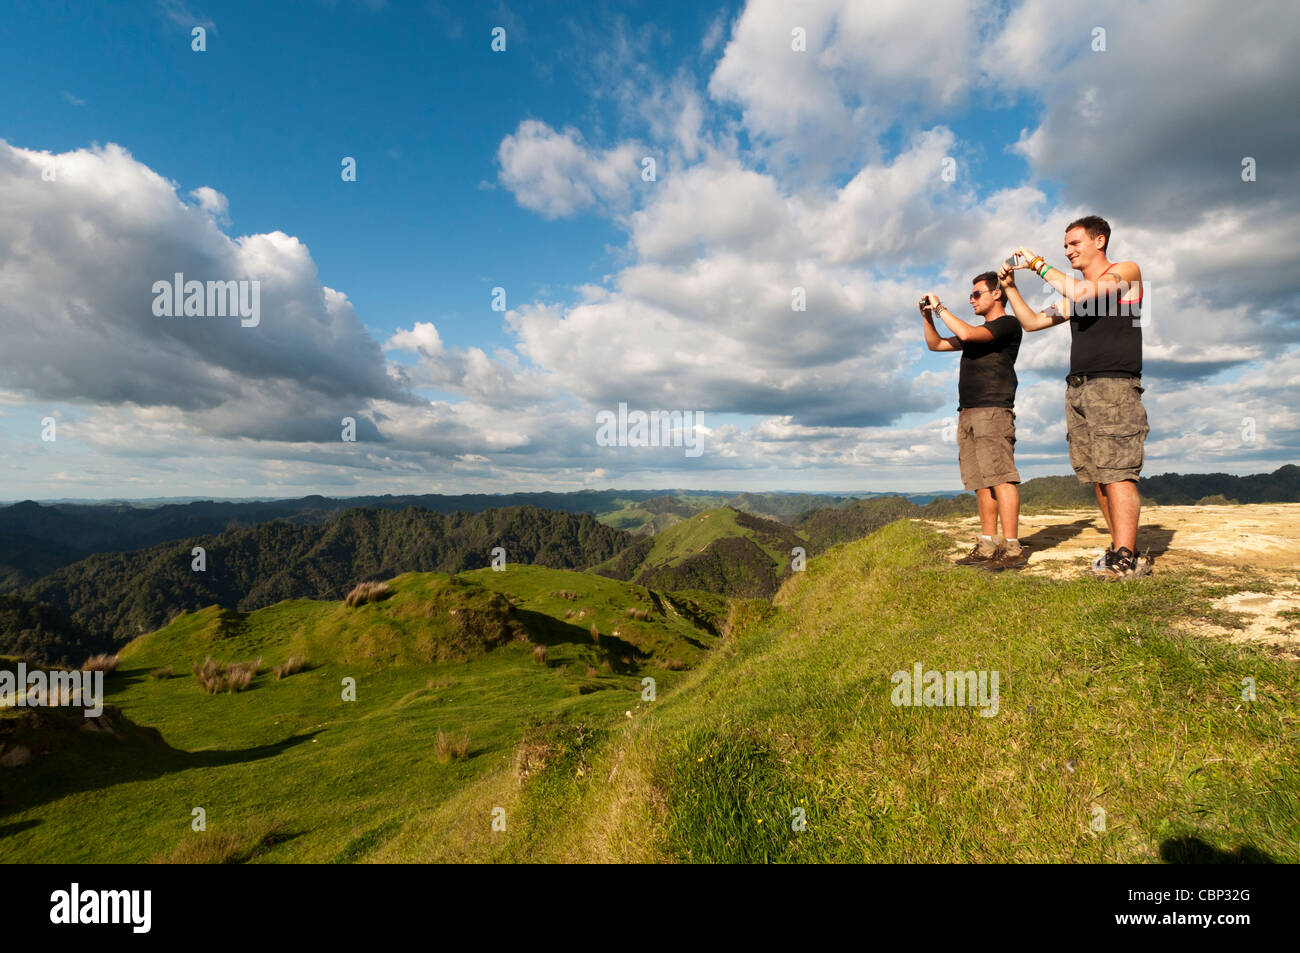 Two young backpackers taking picture with cameras, Blue duck lodge, Whakahoro, Ruapehu District, New Zealand - Stock Image